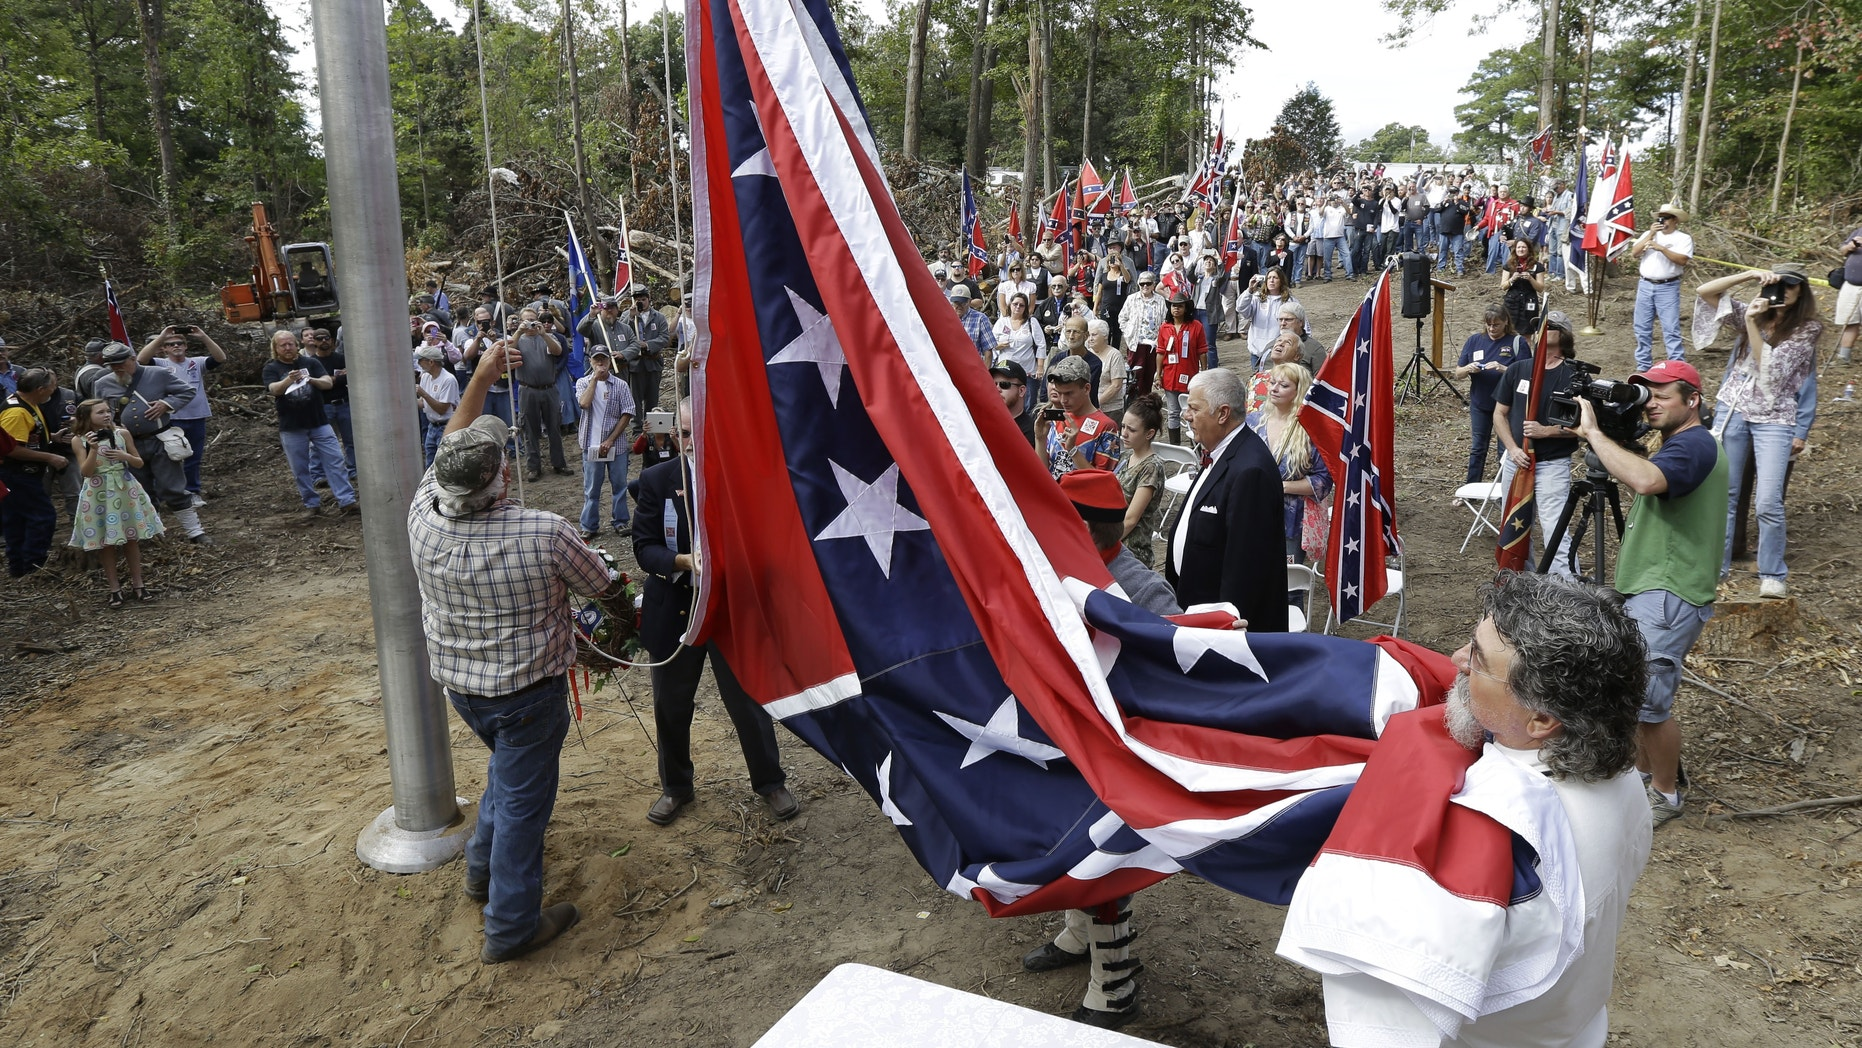 "A group called ""Virginia Flaggers"" raise the Confederate battle flag on a pole near Interstate 95 in Chester, Va., Saturday, Sept. 28, 2013.  Hundreds gathered Saturday in freshly cleared woods along Interstate 95 to celebrate the raising of a Confederate battle flag, an event that stirred strong feelings among those who view it as a symbol of division.  (AP Photo/Steve Helber)"